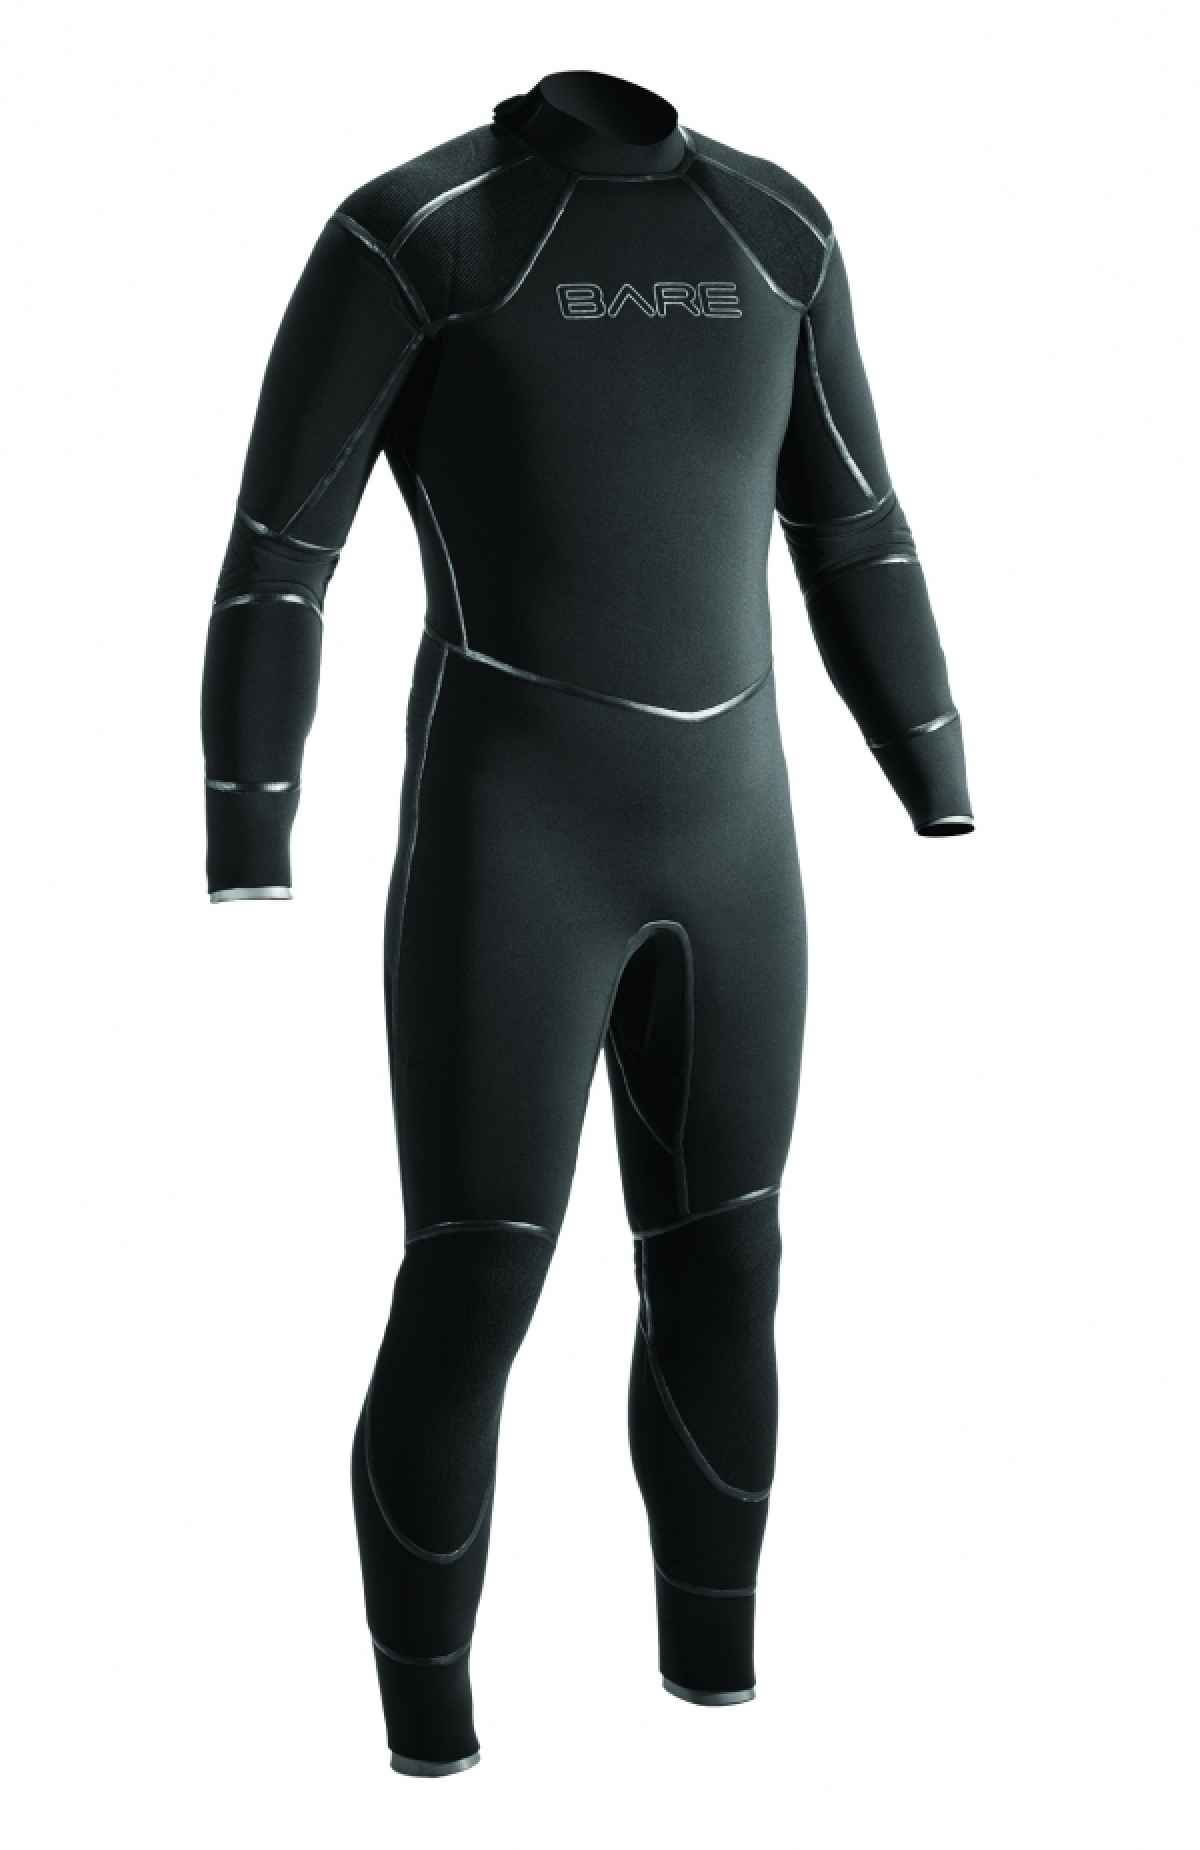 Scuba Wetsuit Thickness Guide: How to Match Your Wetsuit ...